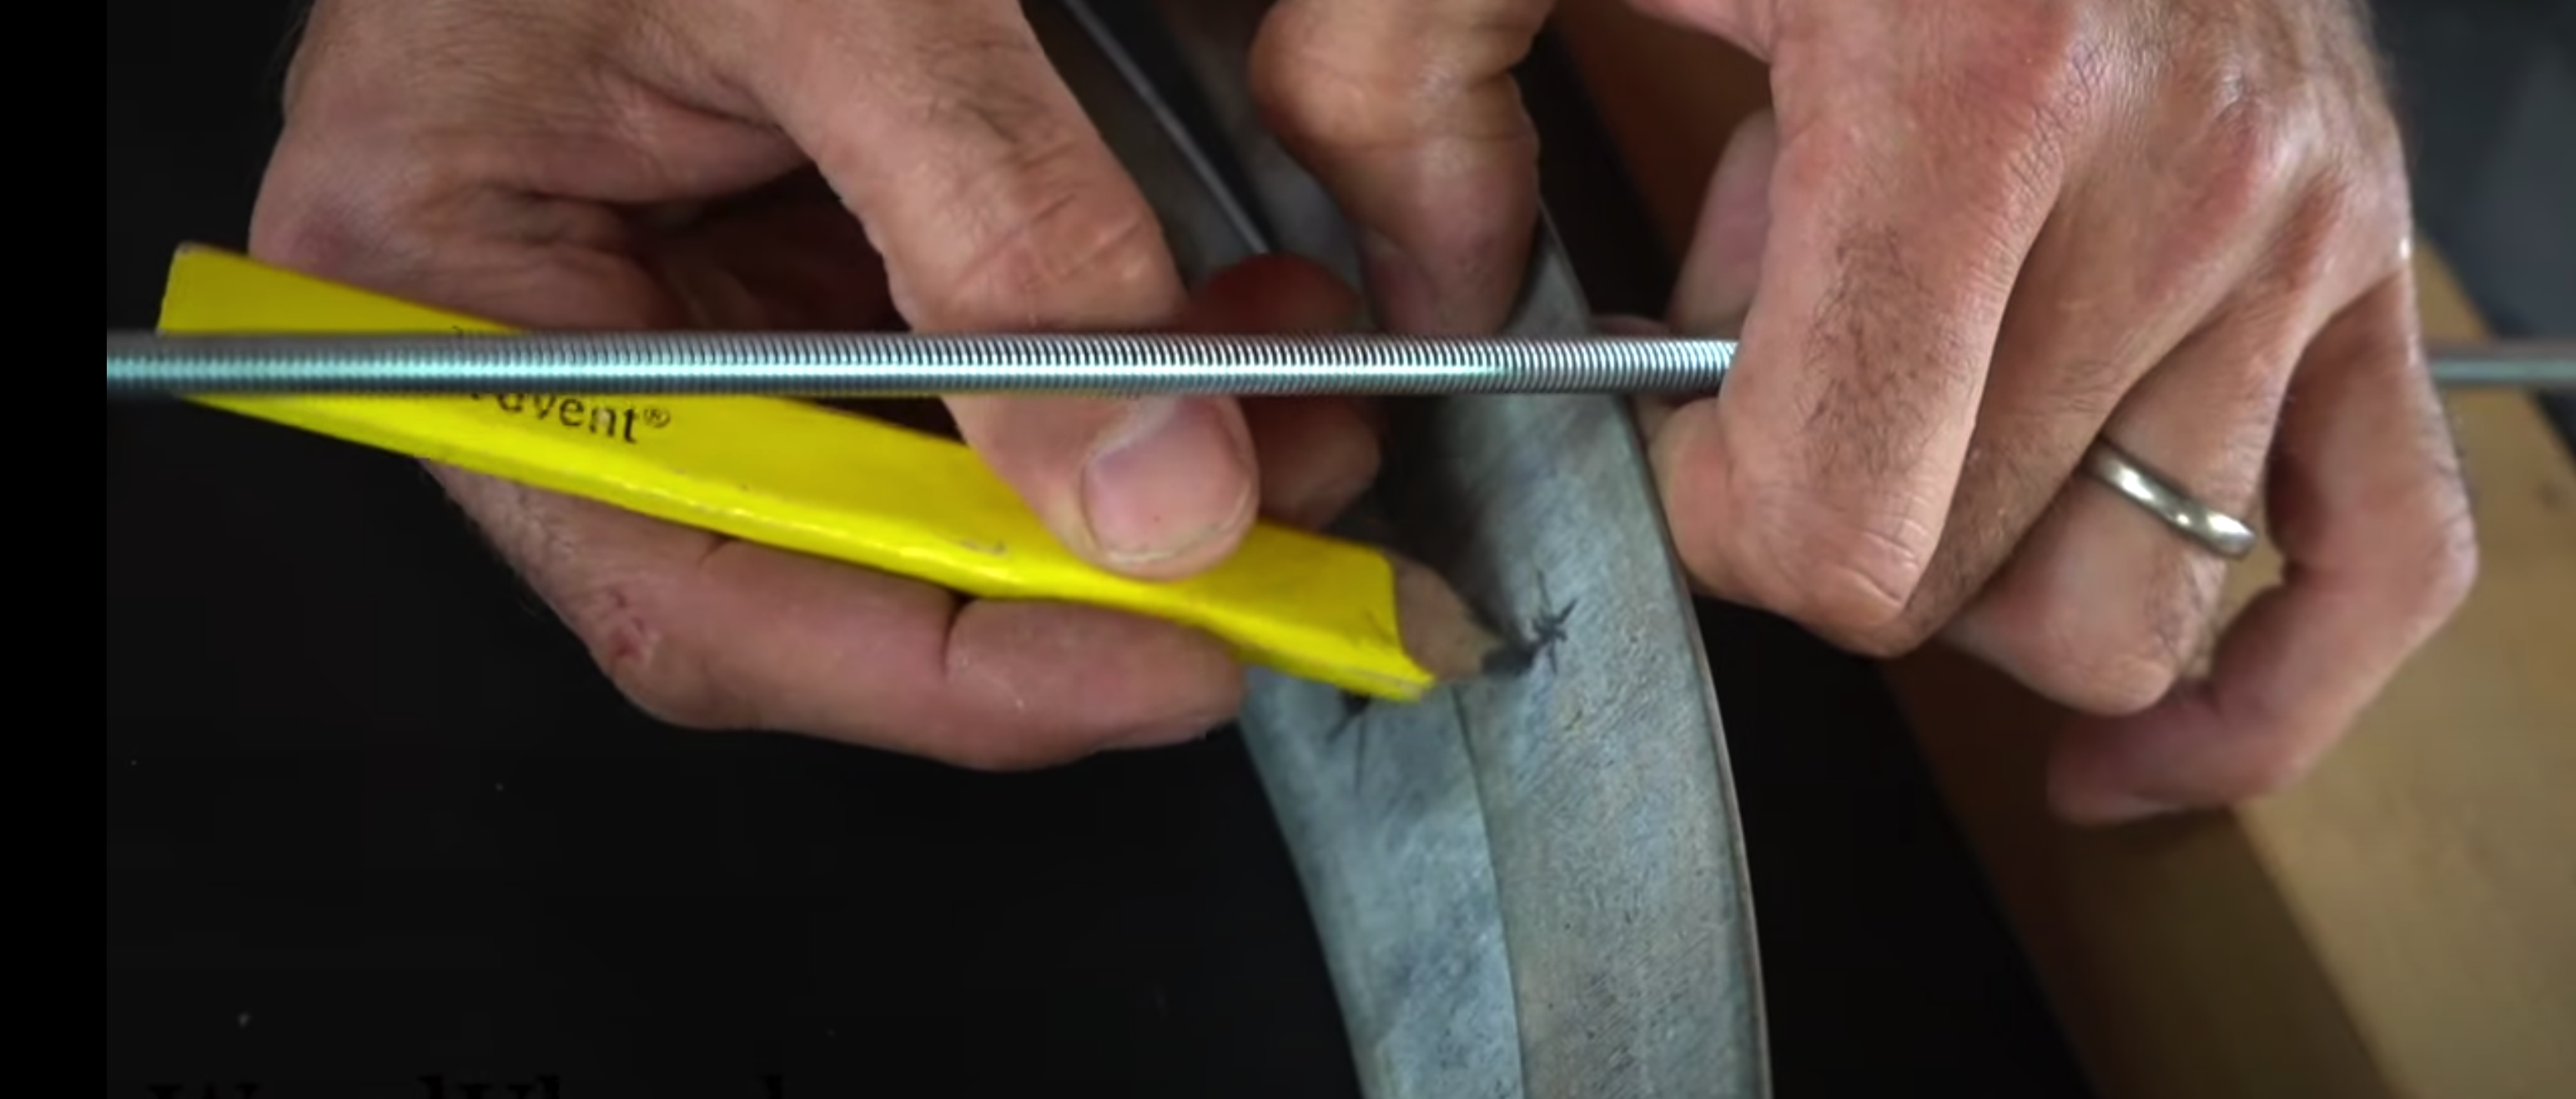 A yellow pencil being used to mark up a metal hoop. A metal bar is used as a guide of where to mark.